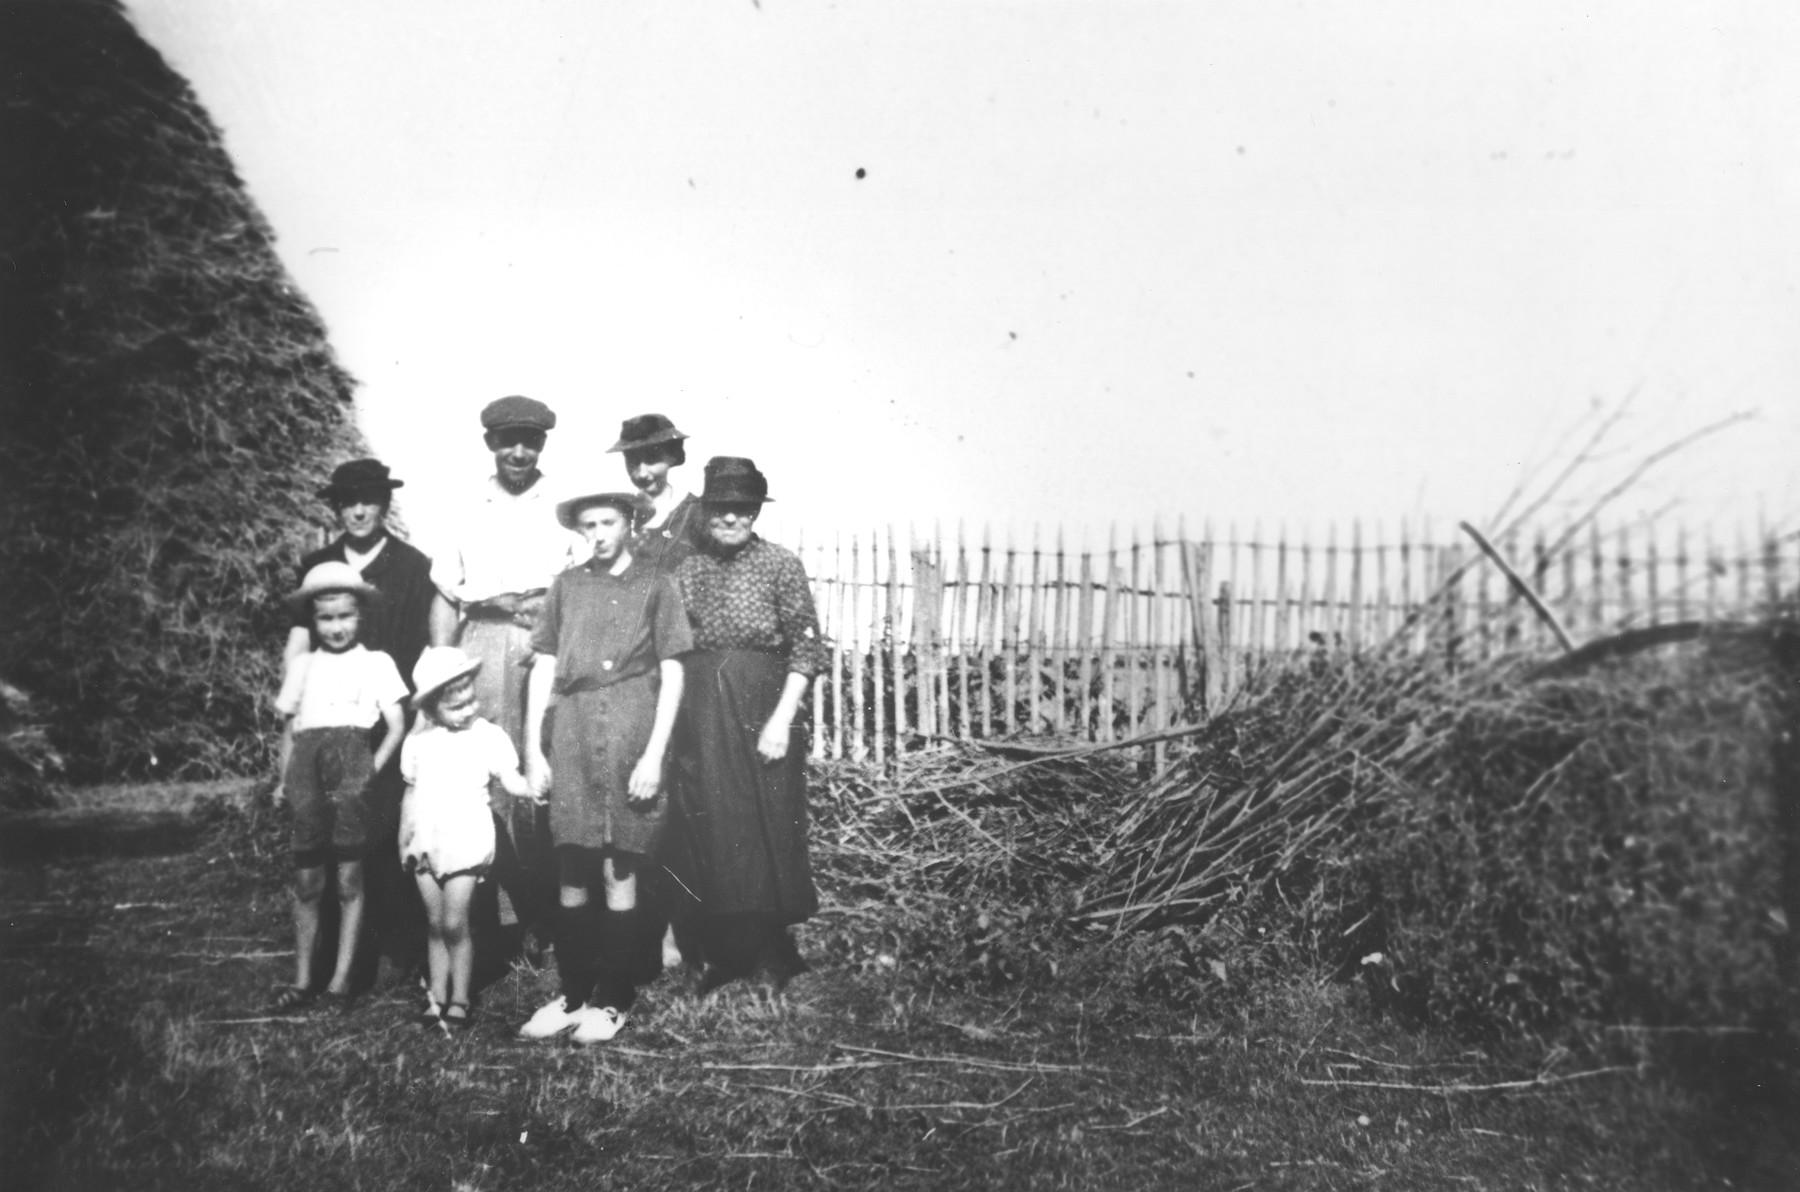 Portrait of the French family who employed Julien Bluschtein on their farm during the German occupation of France.